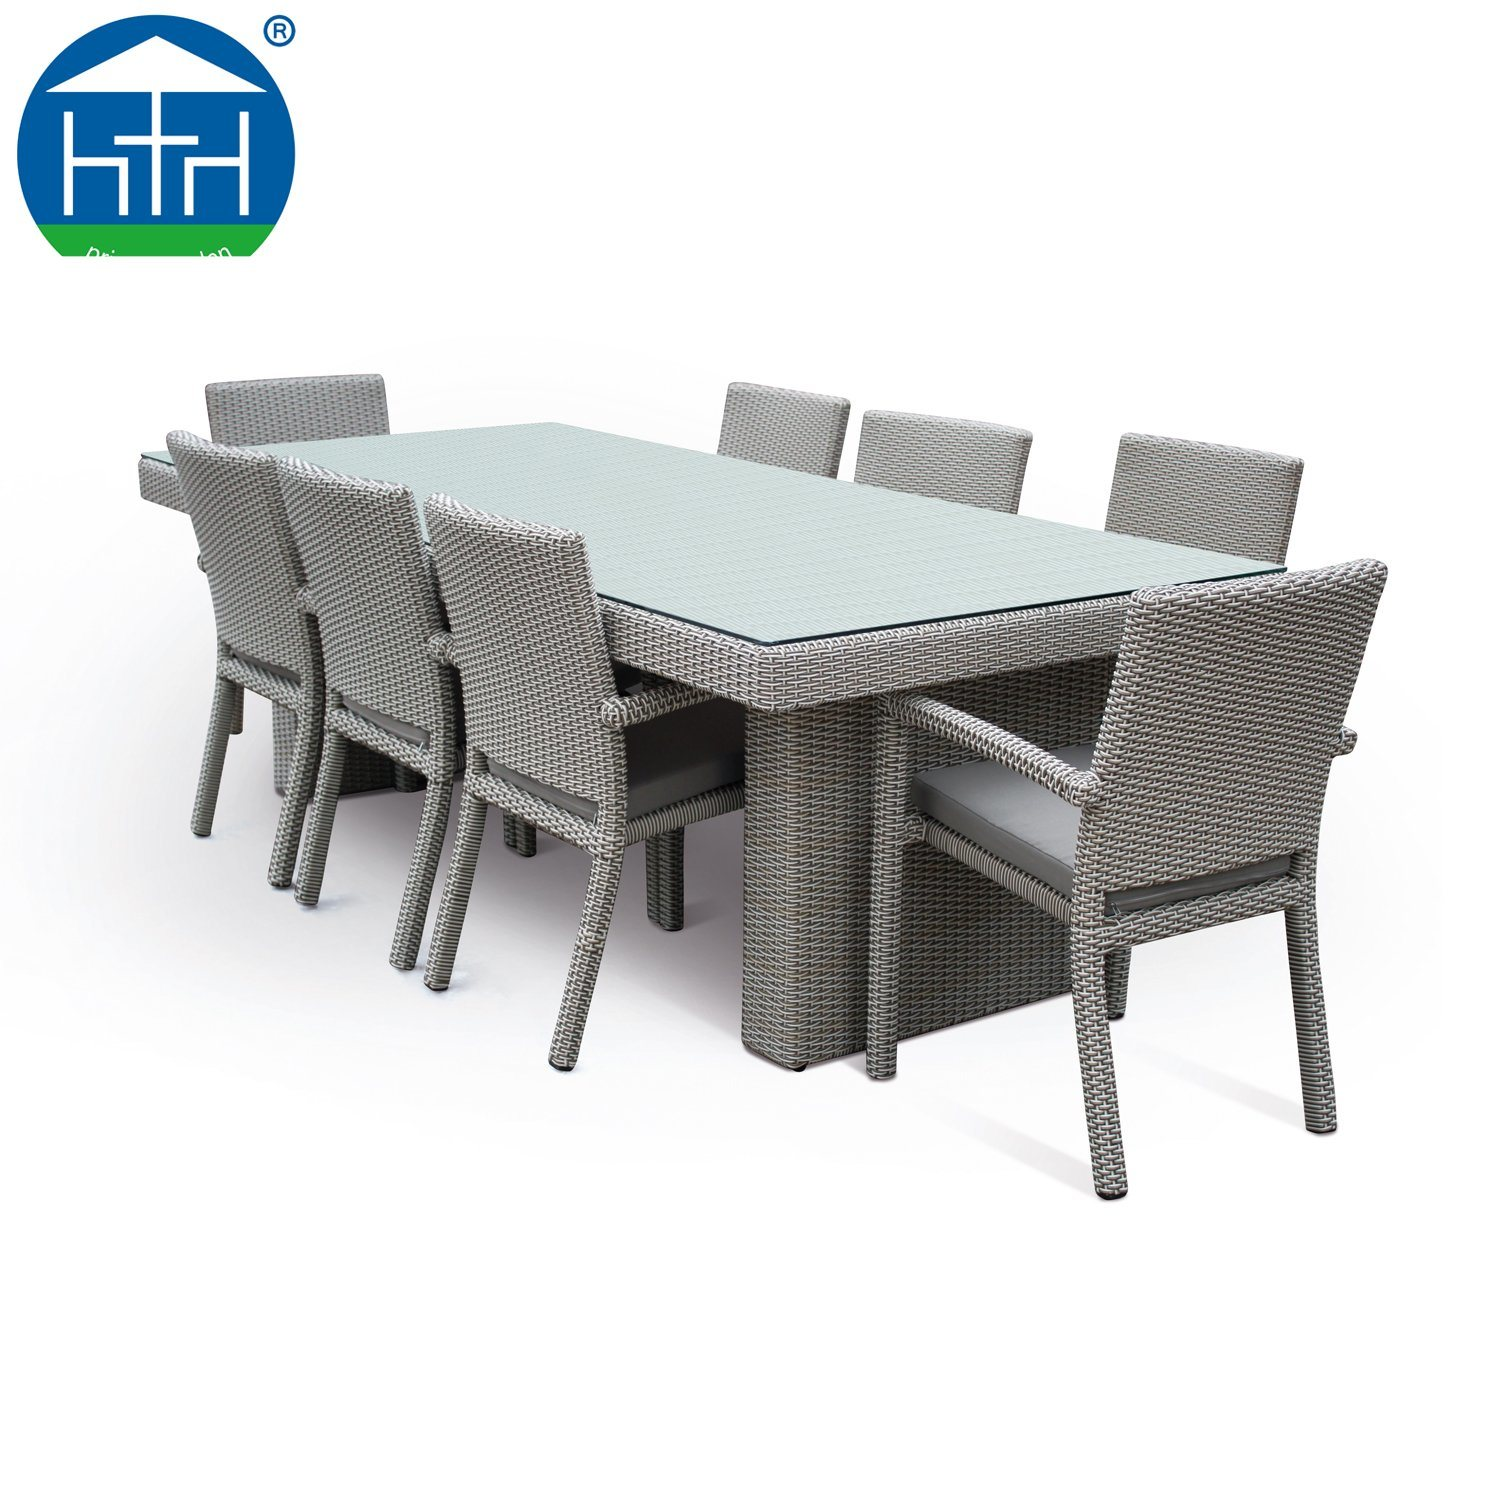 Good-Quality-Home-Casual-Rattan-Garden-Set-Dining-Sets-Outdoor-Furniture.jpg